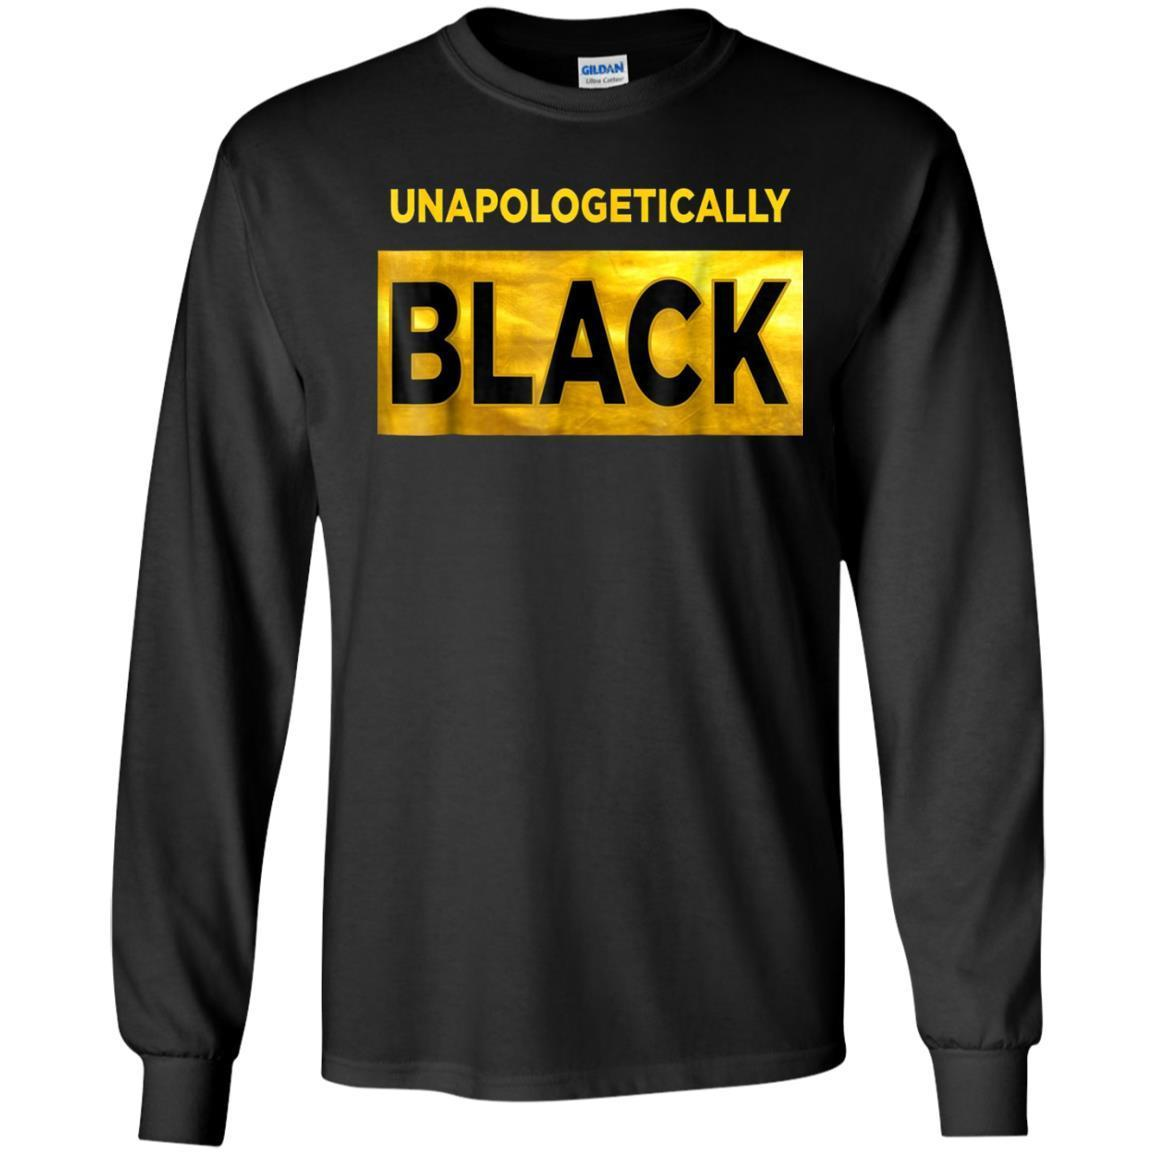 Unapologetically Black T-Shirt Pride Apparel Clothing Long Sleeve 240